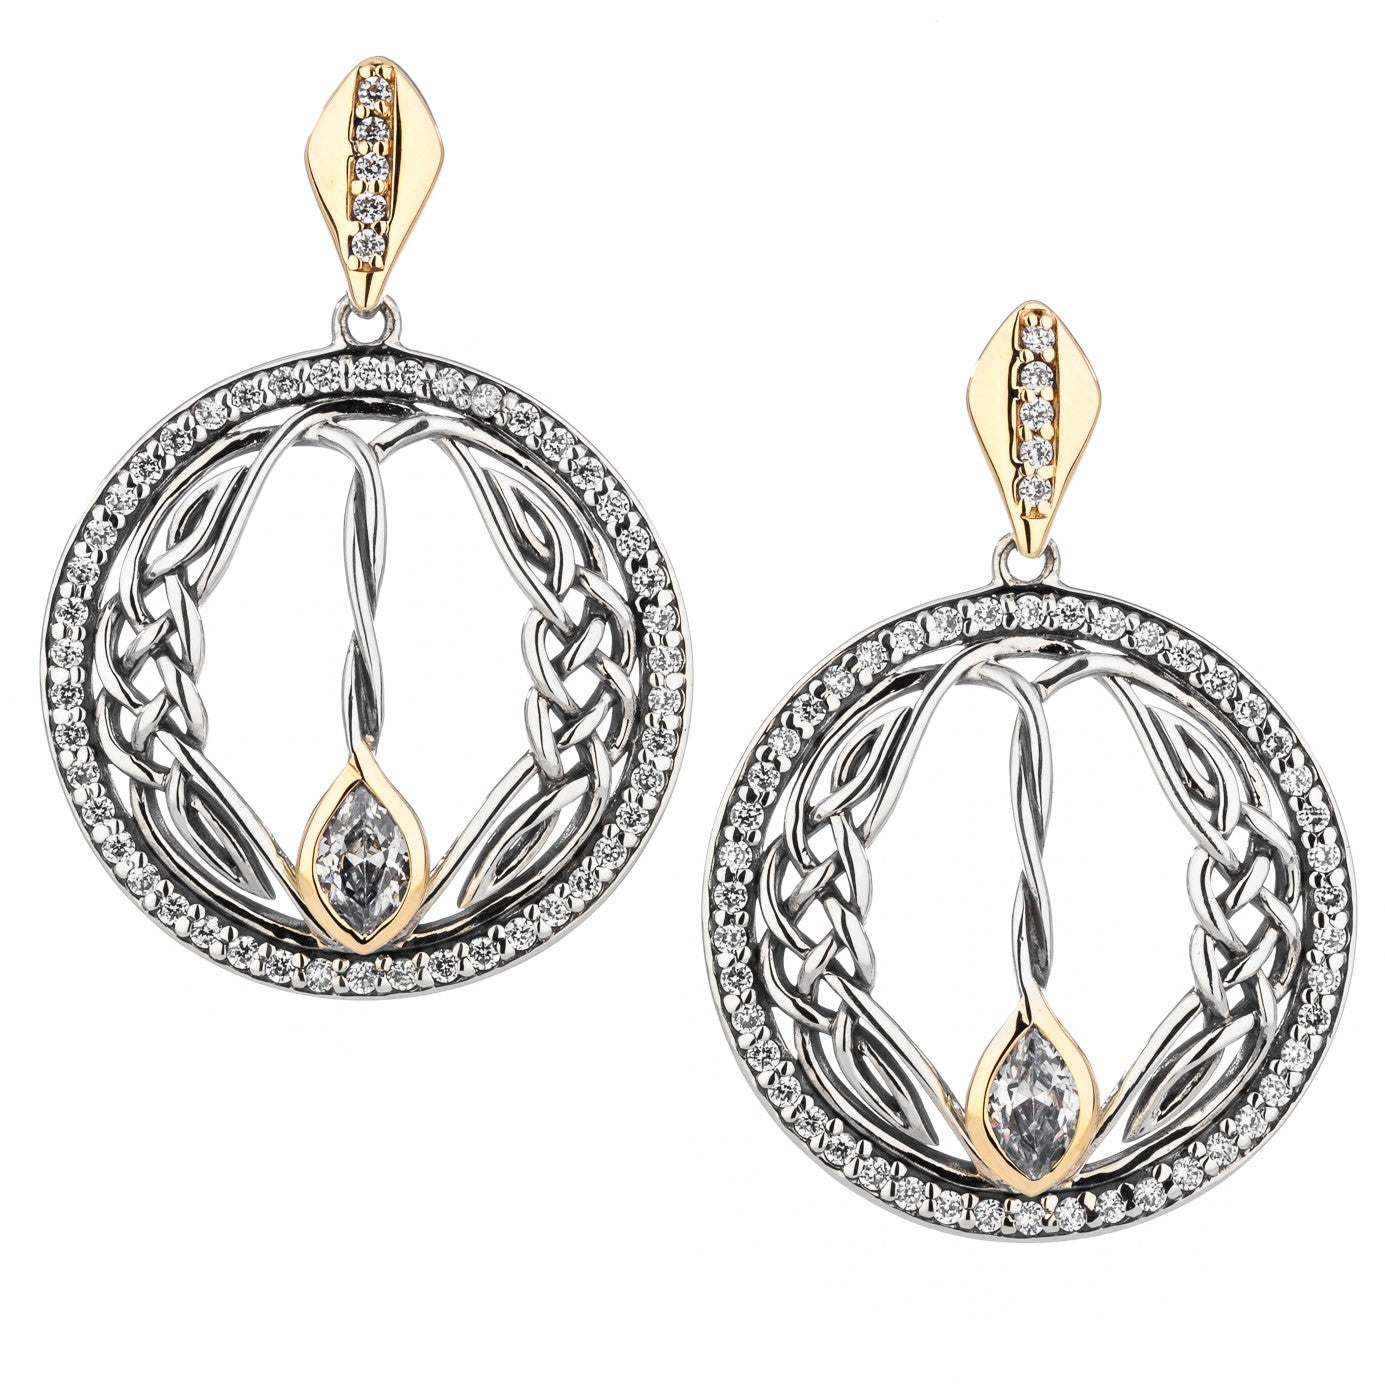 Woven Round Marquis Gateway Earrings